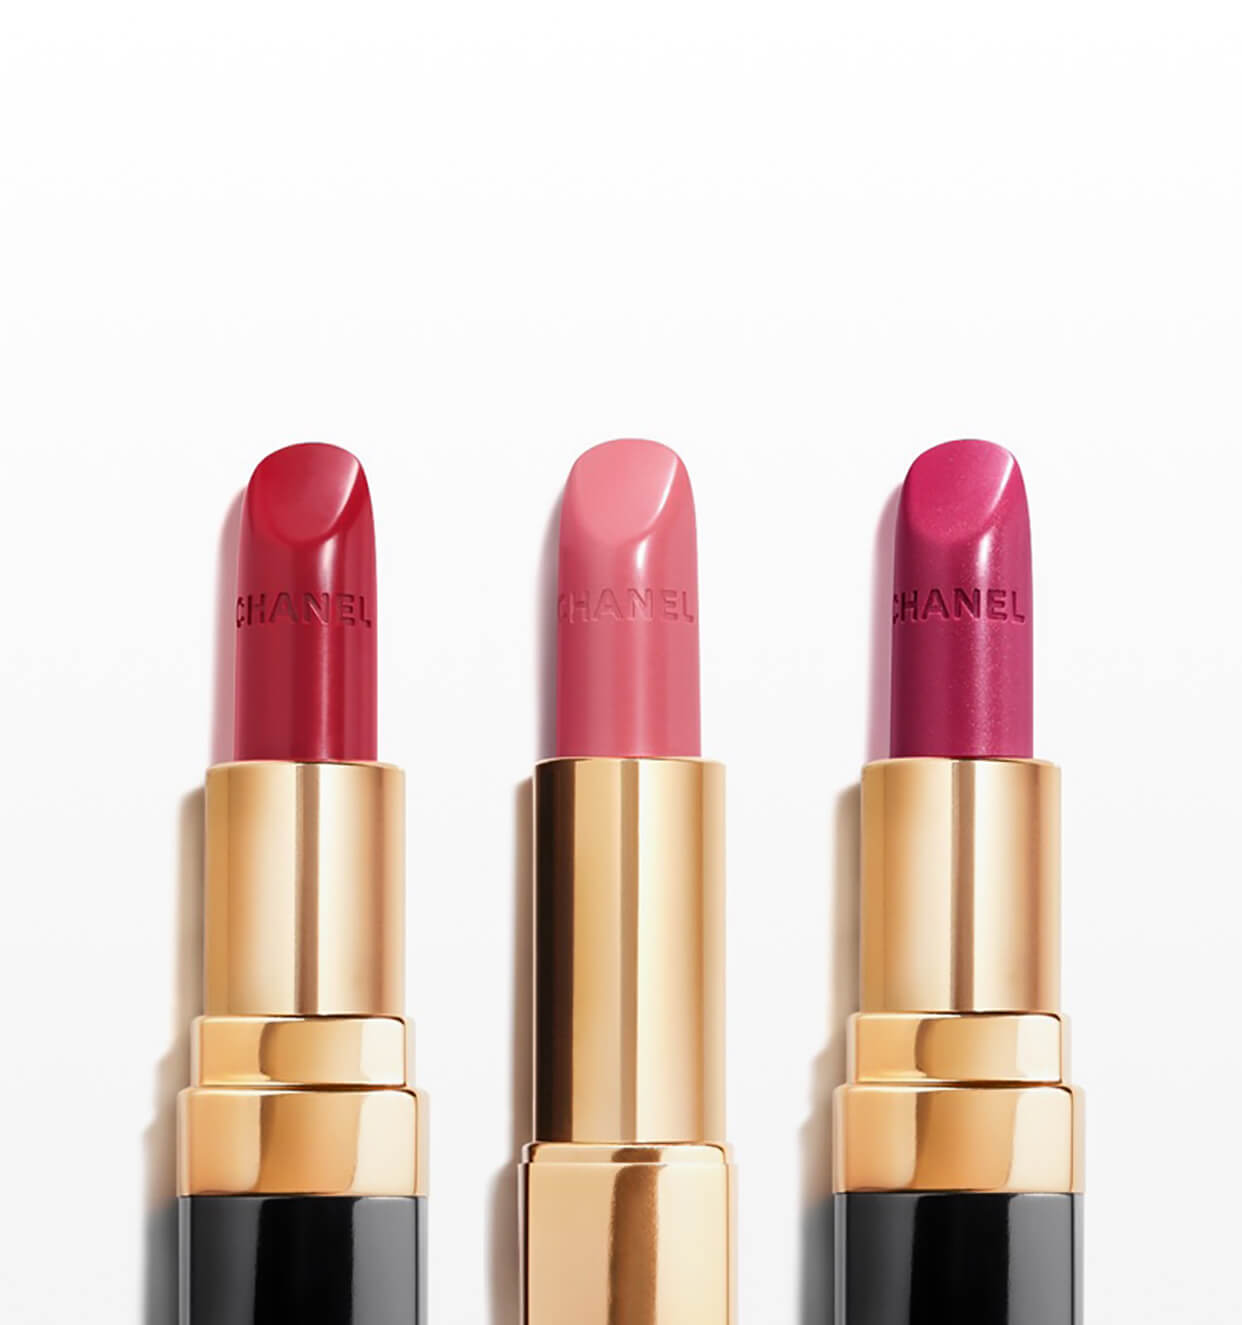 Lipsticks - CHANEL